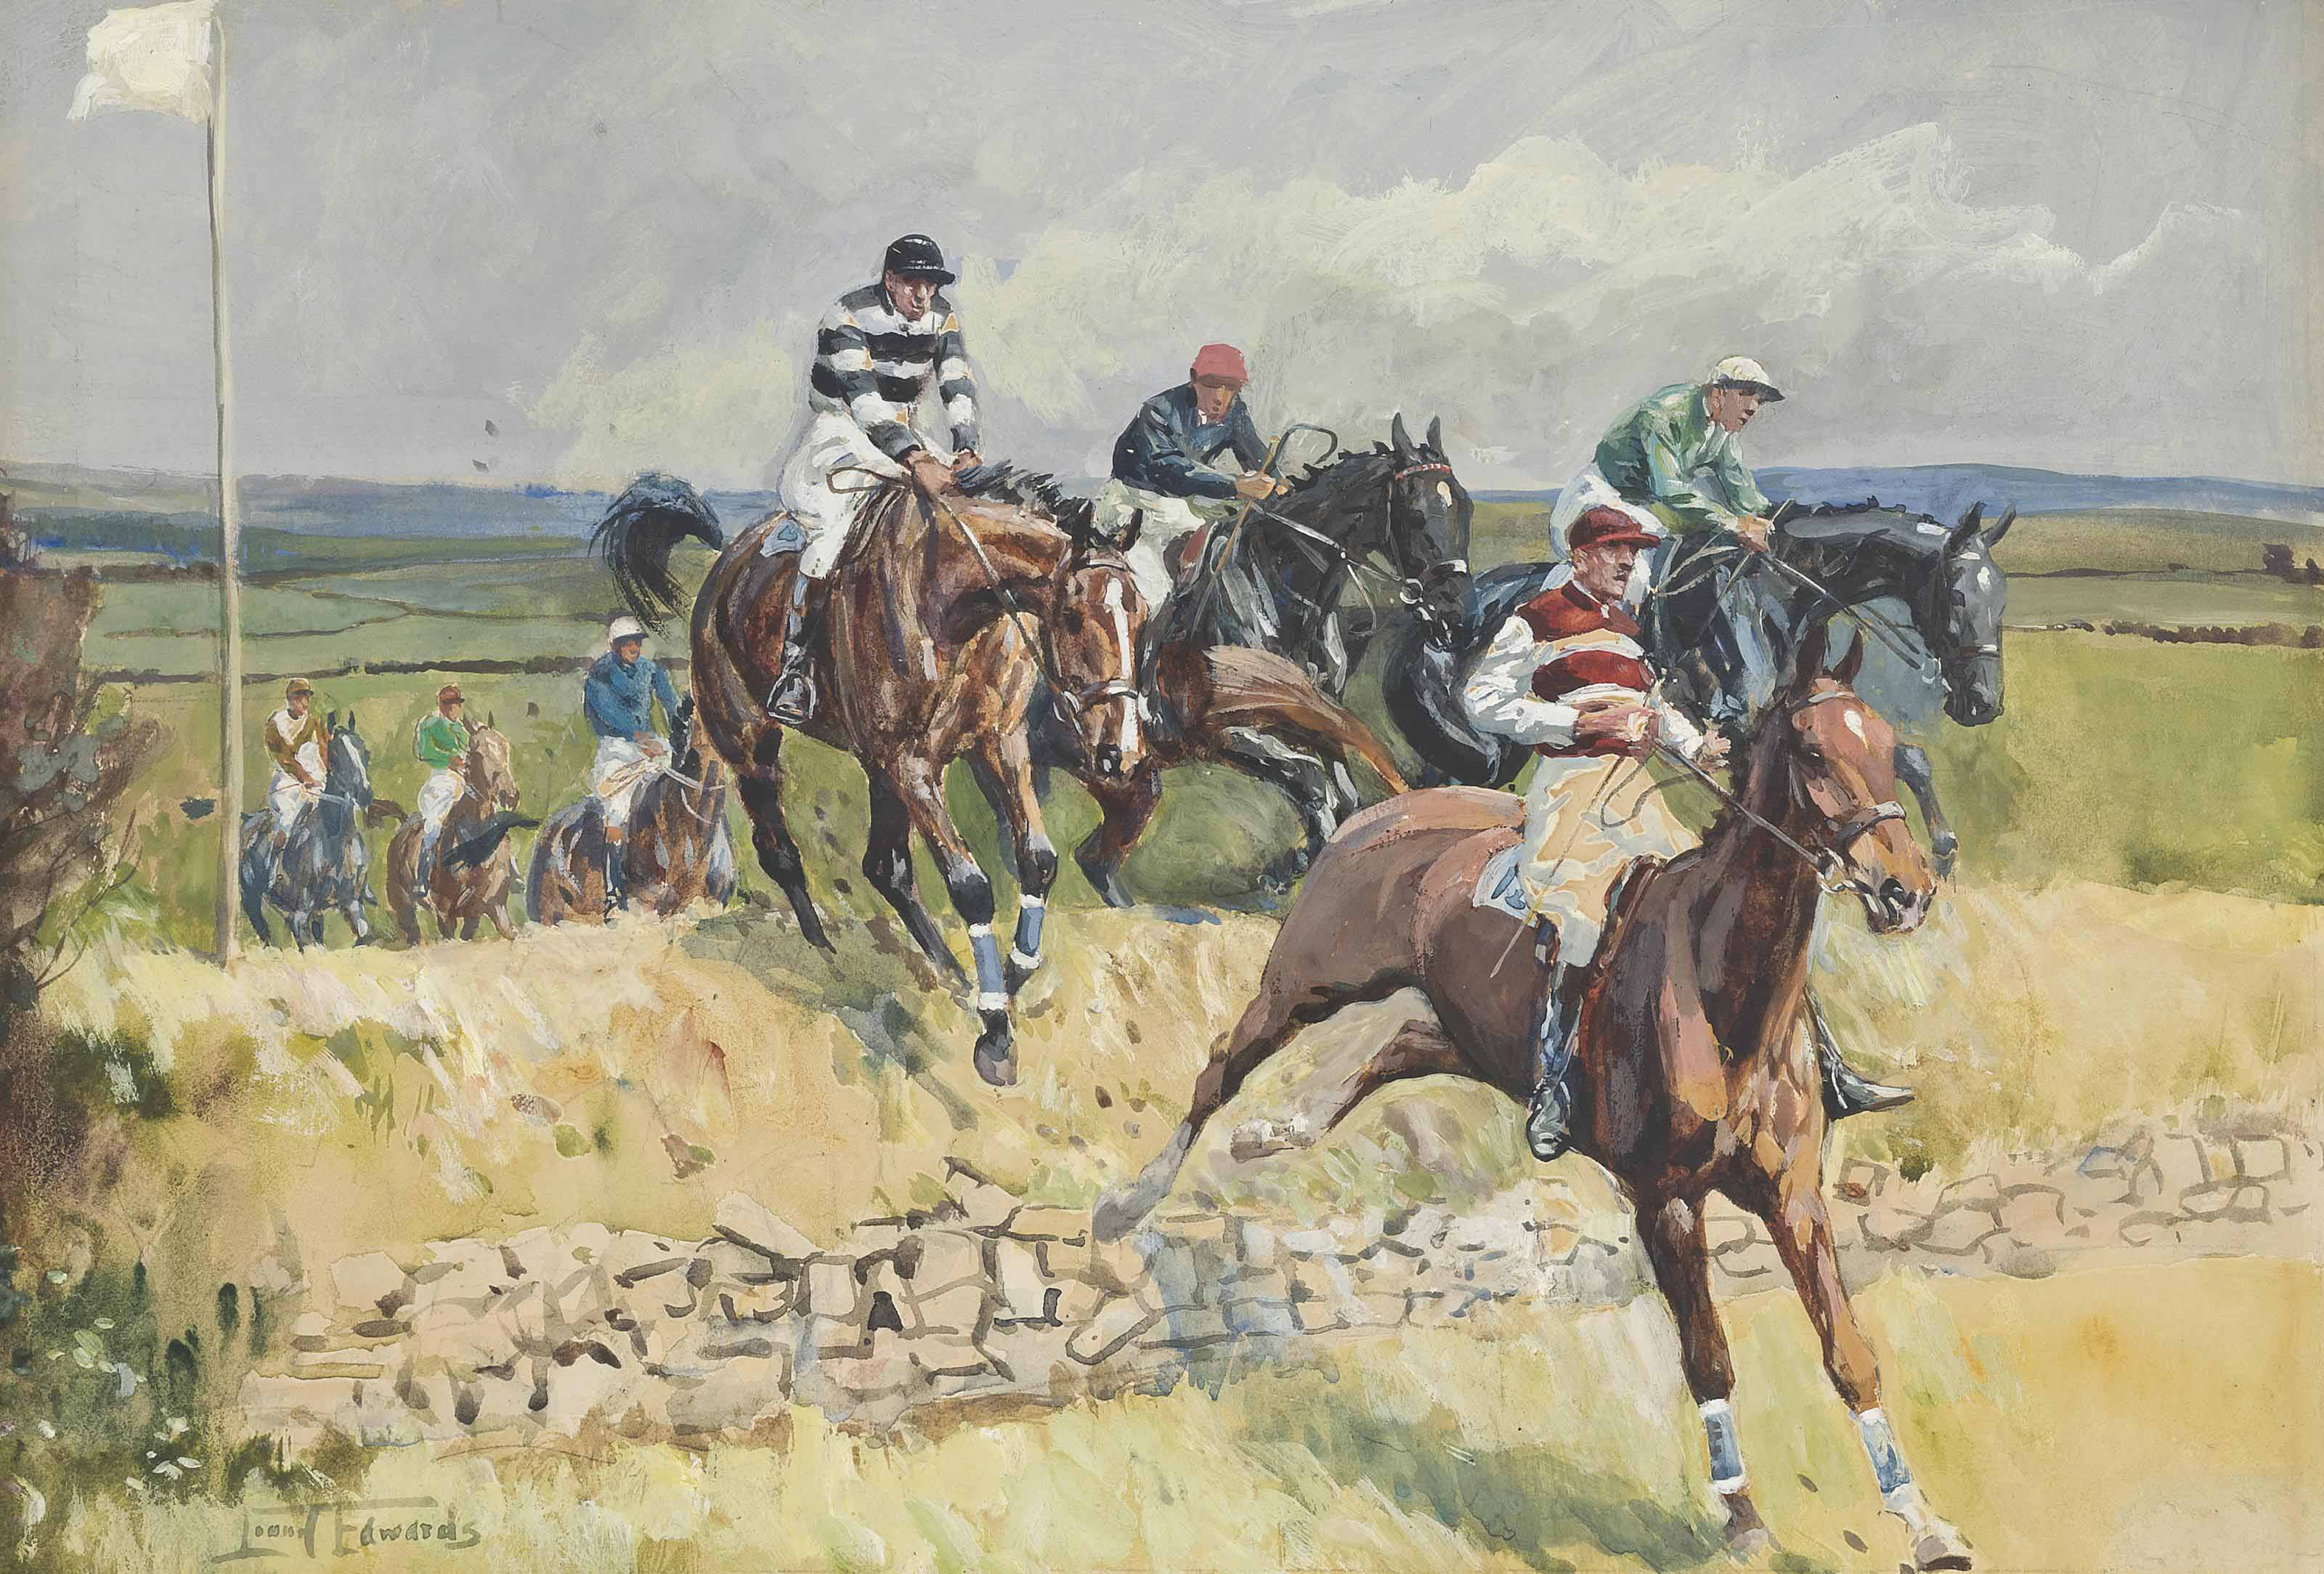 Leaping the fence - an Irish point-to-point